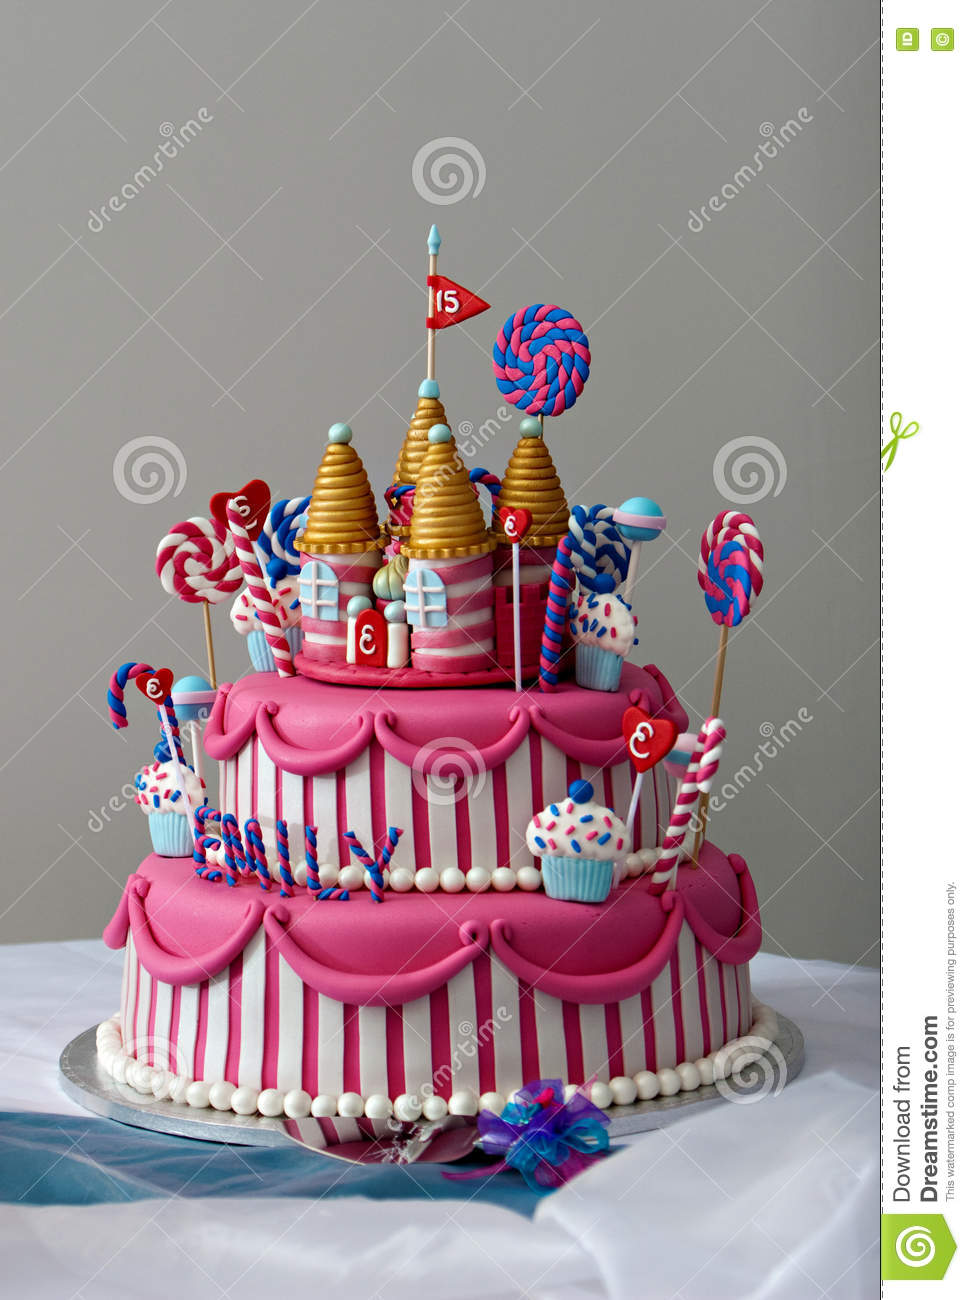 Outstanding Birthday Cake Stock Image Image Of Iced Multicolored 69701463 Funny Birthday Cards Online Aboleapandamsfinfo